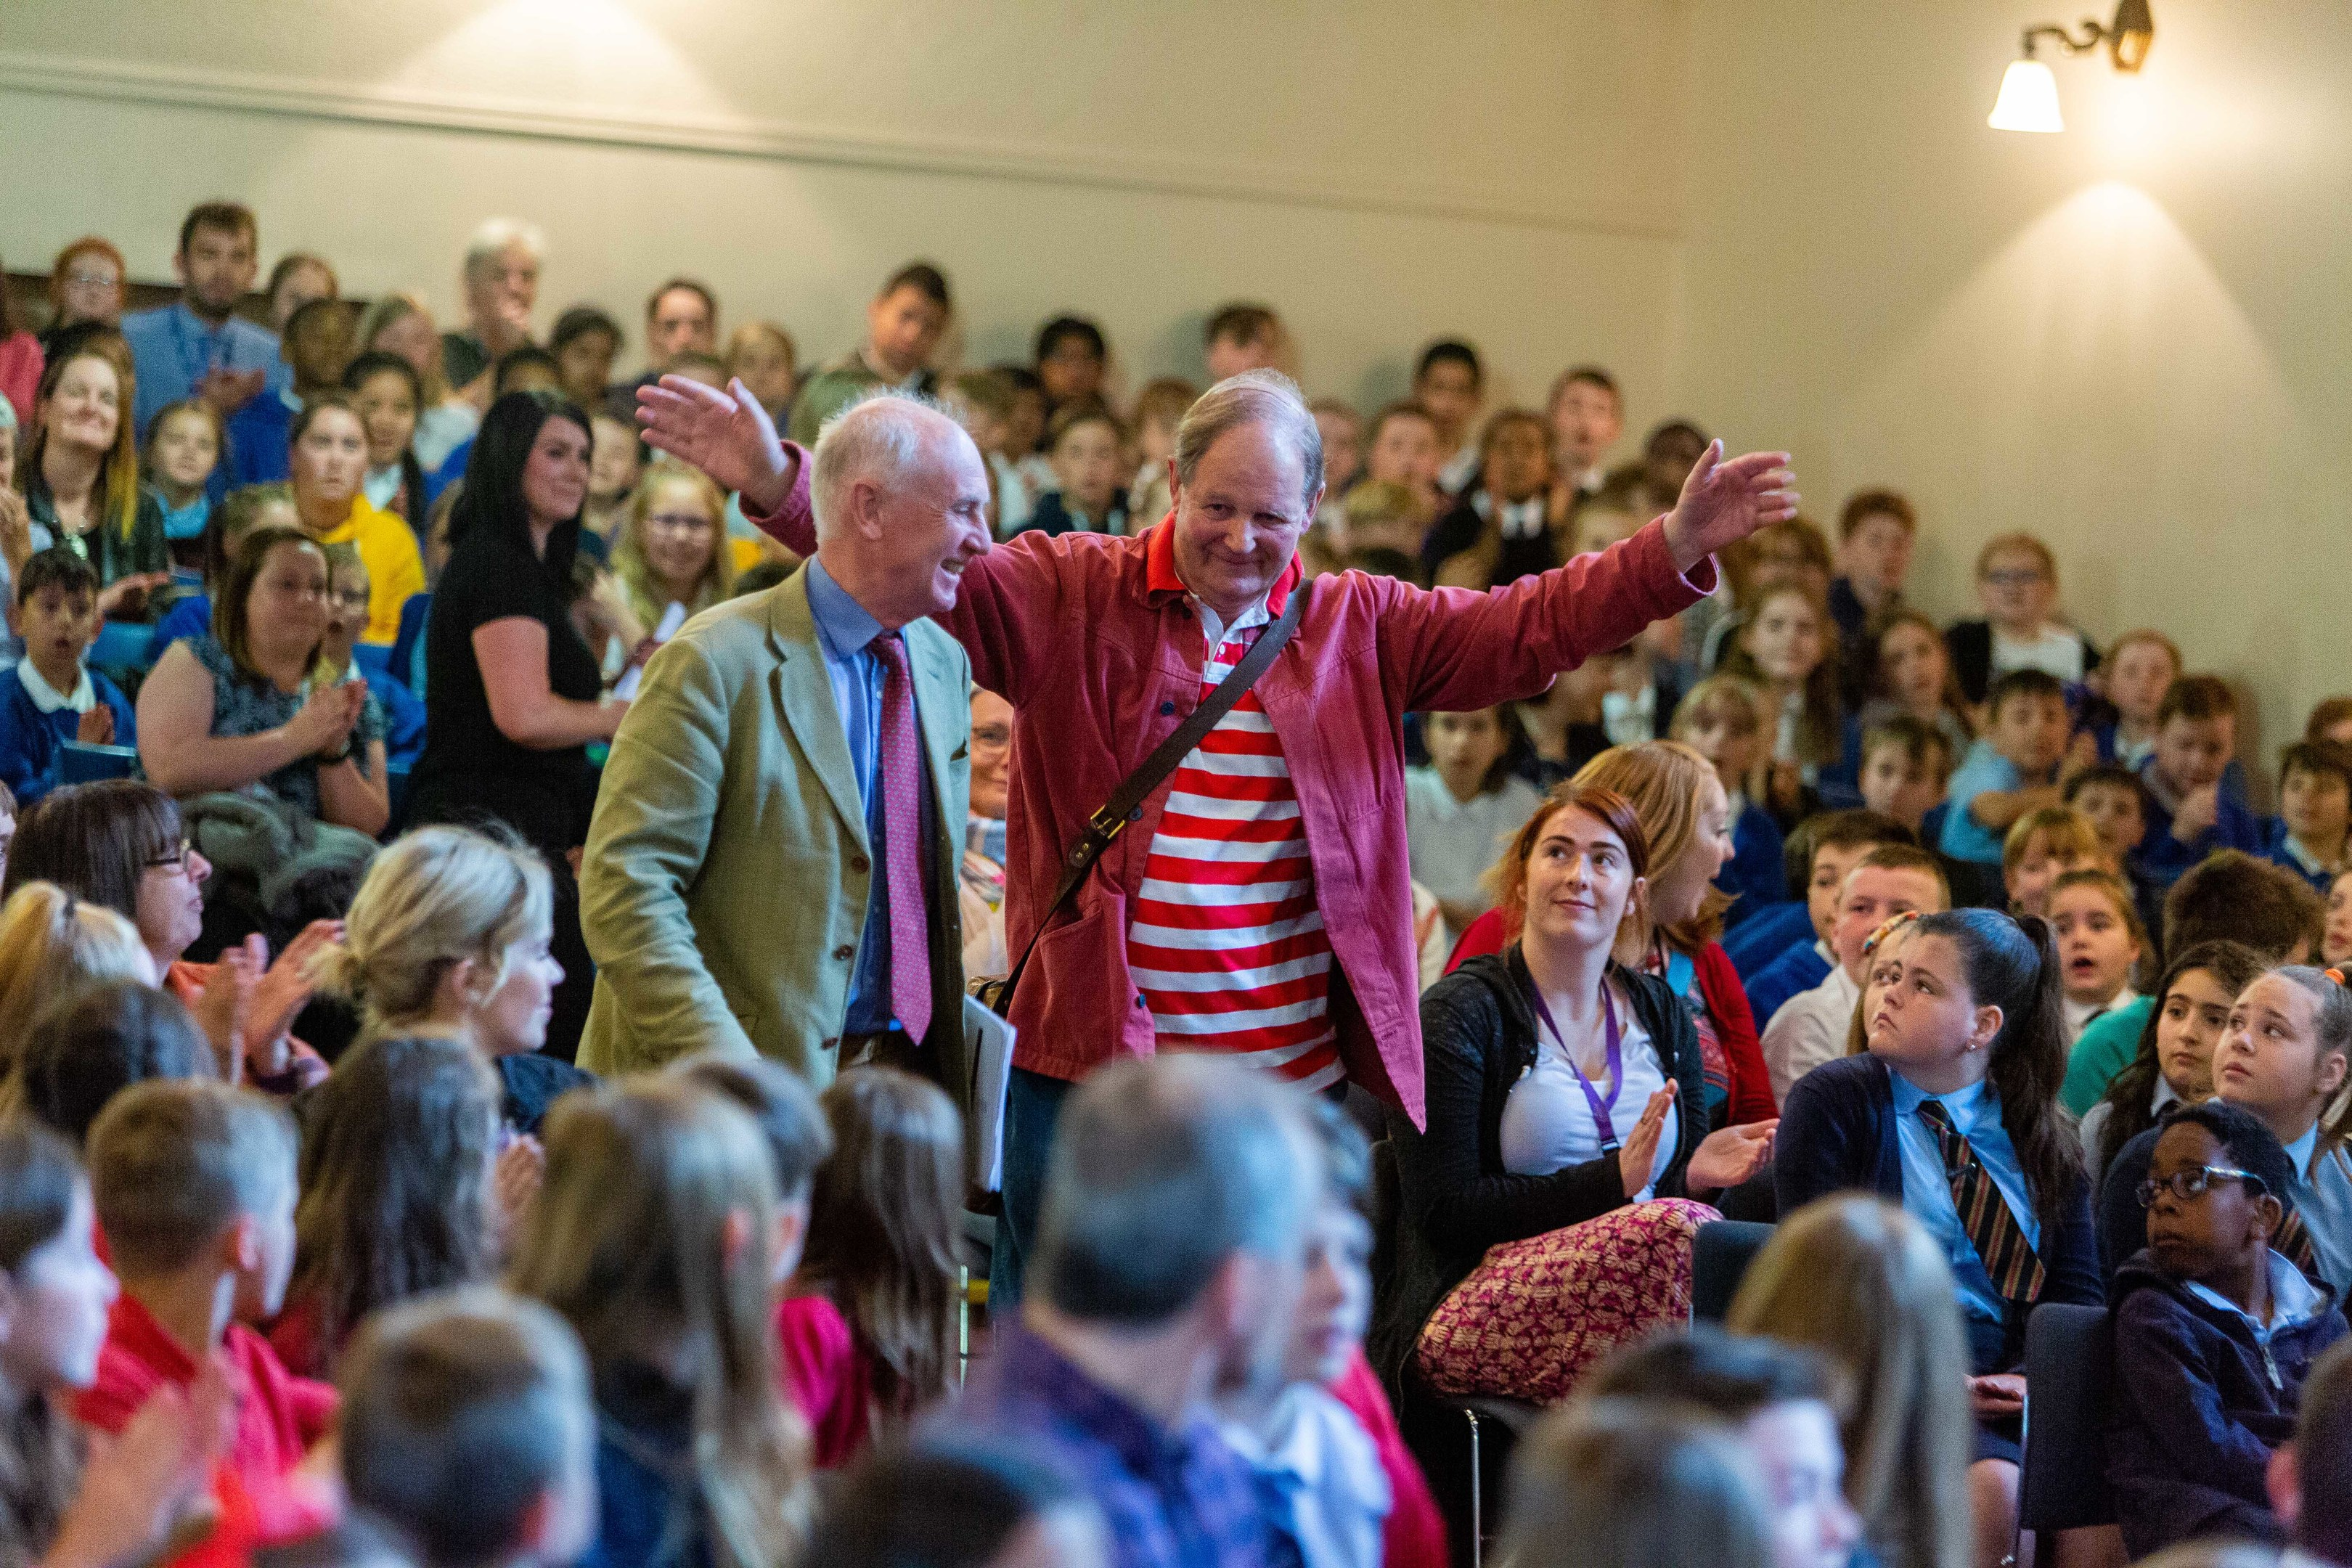 Sir Michael Morpurgo (right) arrives with Sir Hew Strachan at the Younger Hall.